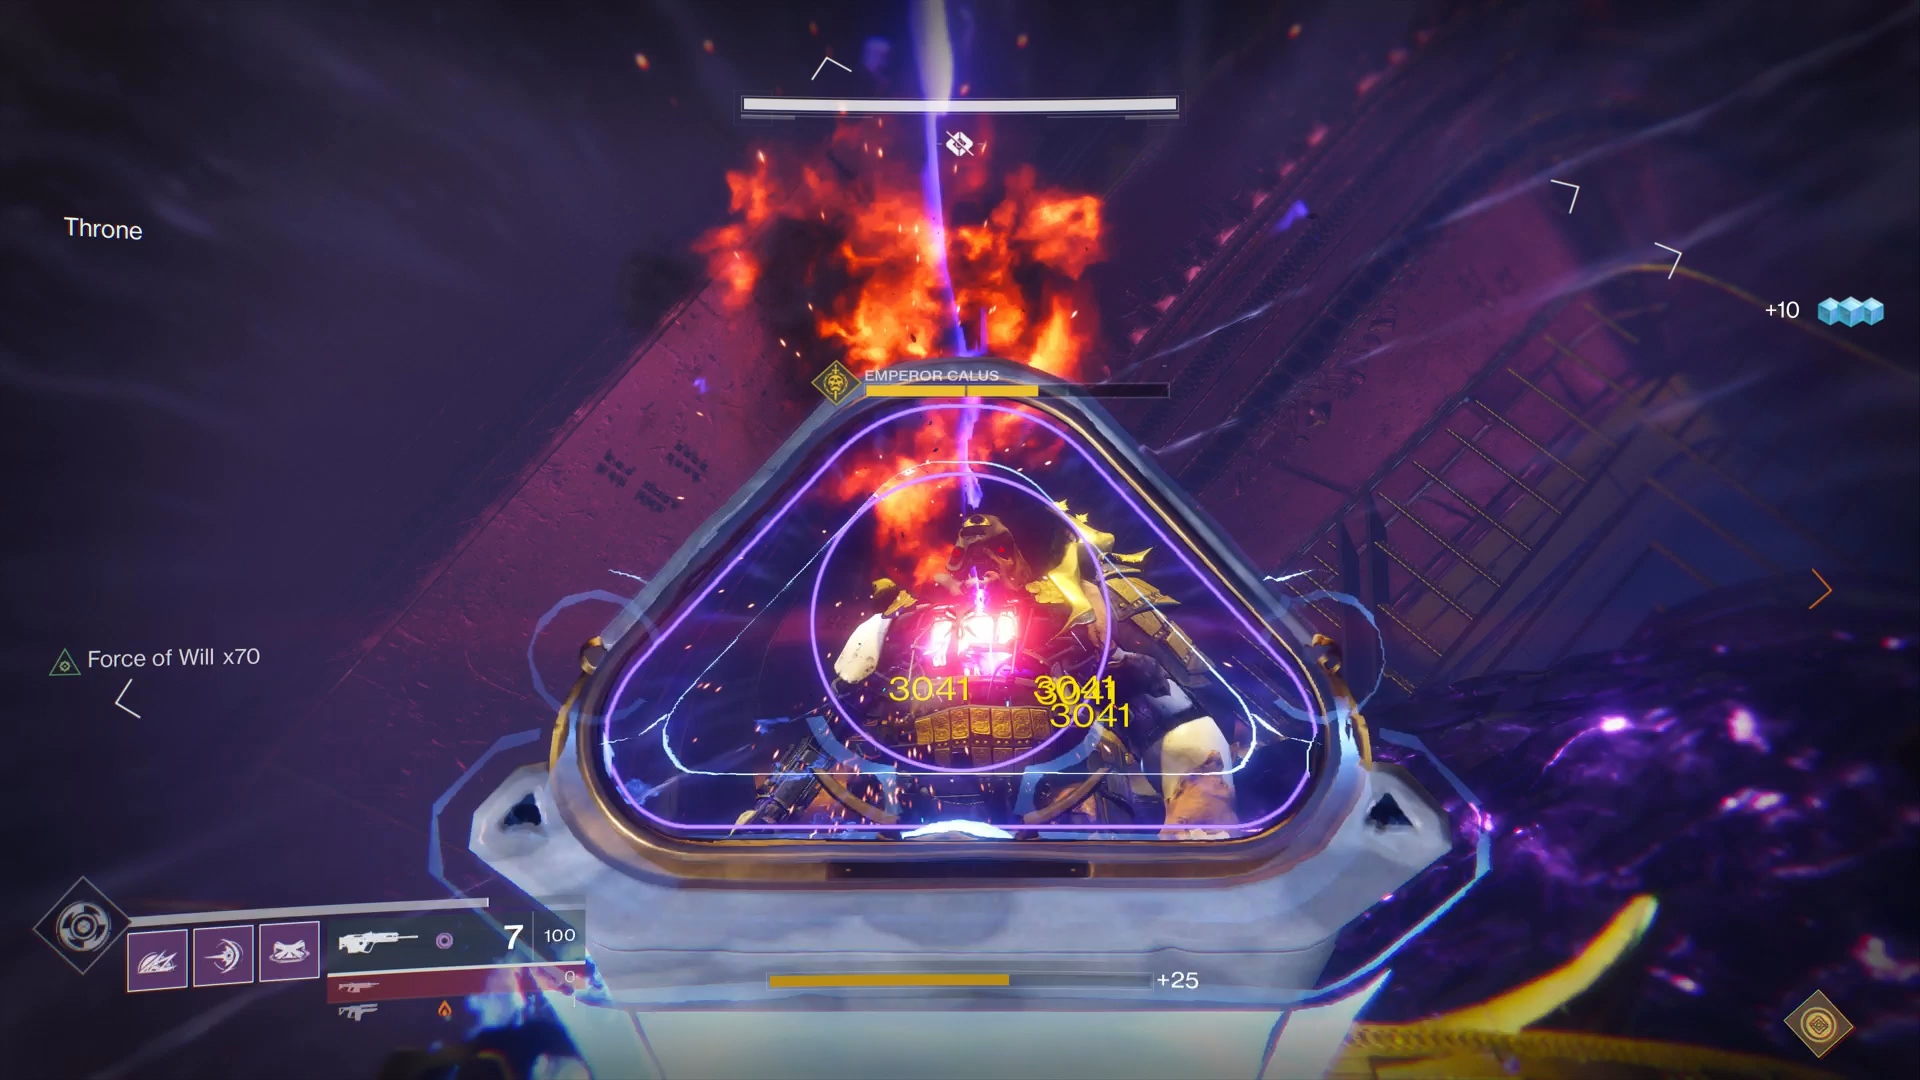 Destiny 2 Leviathan Raid Guide Emperor Calus Polygon 3 Way Switch Four Lights 1 Of 5